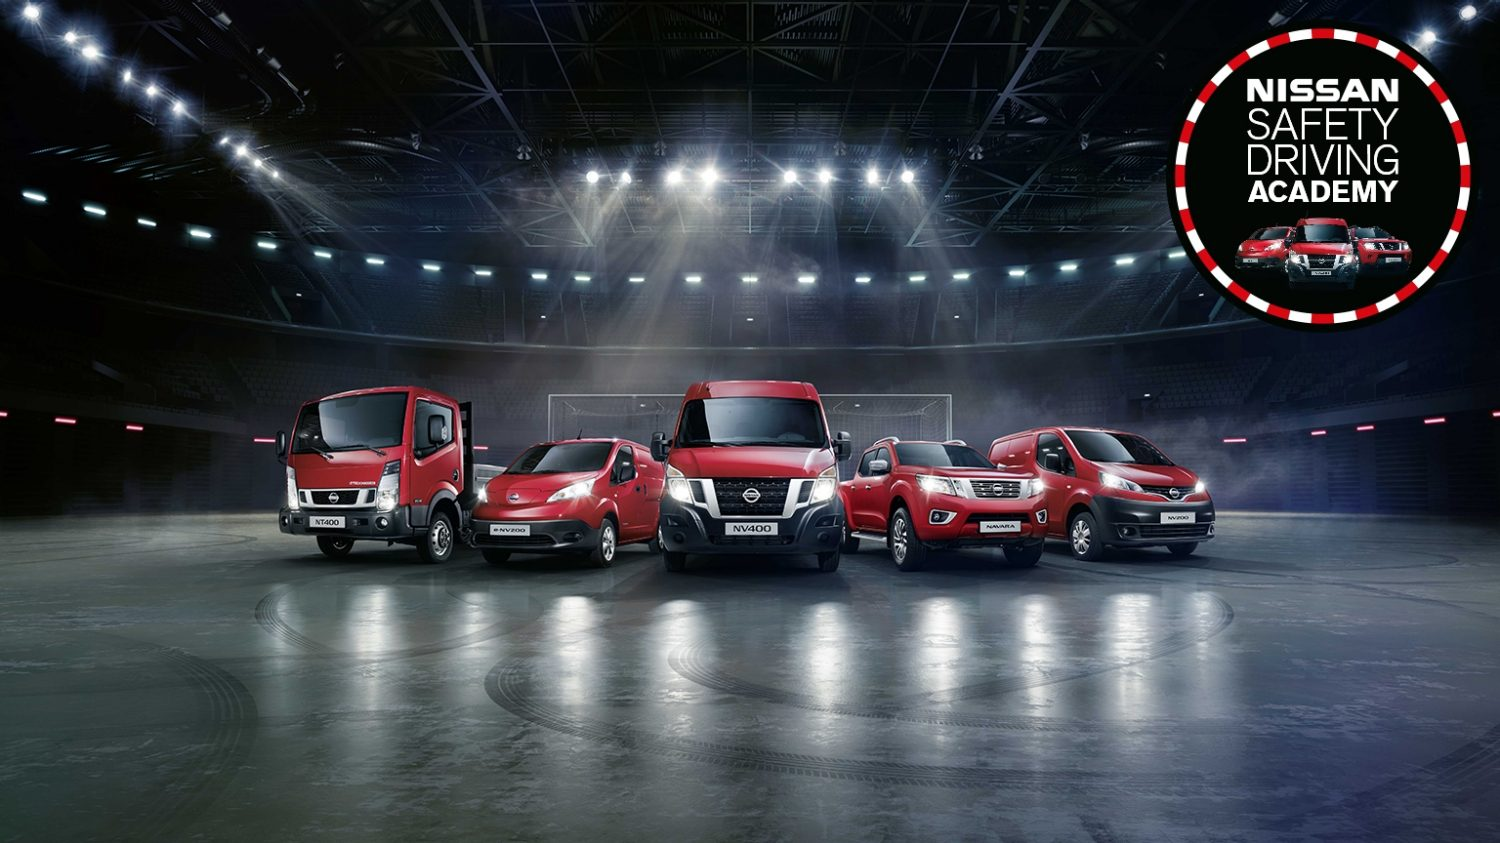 NISSAN Safety Academy